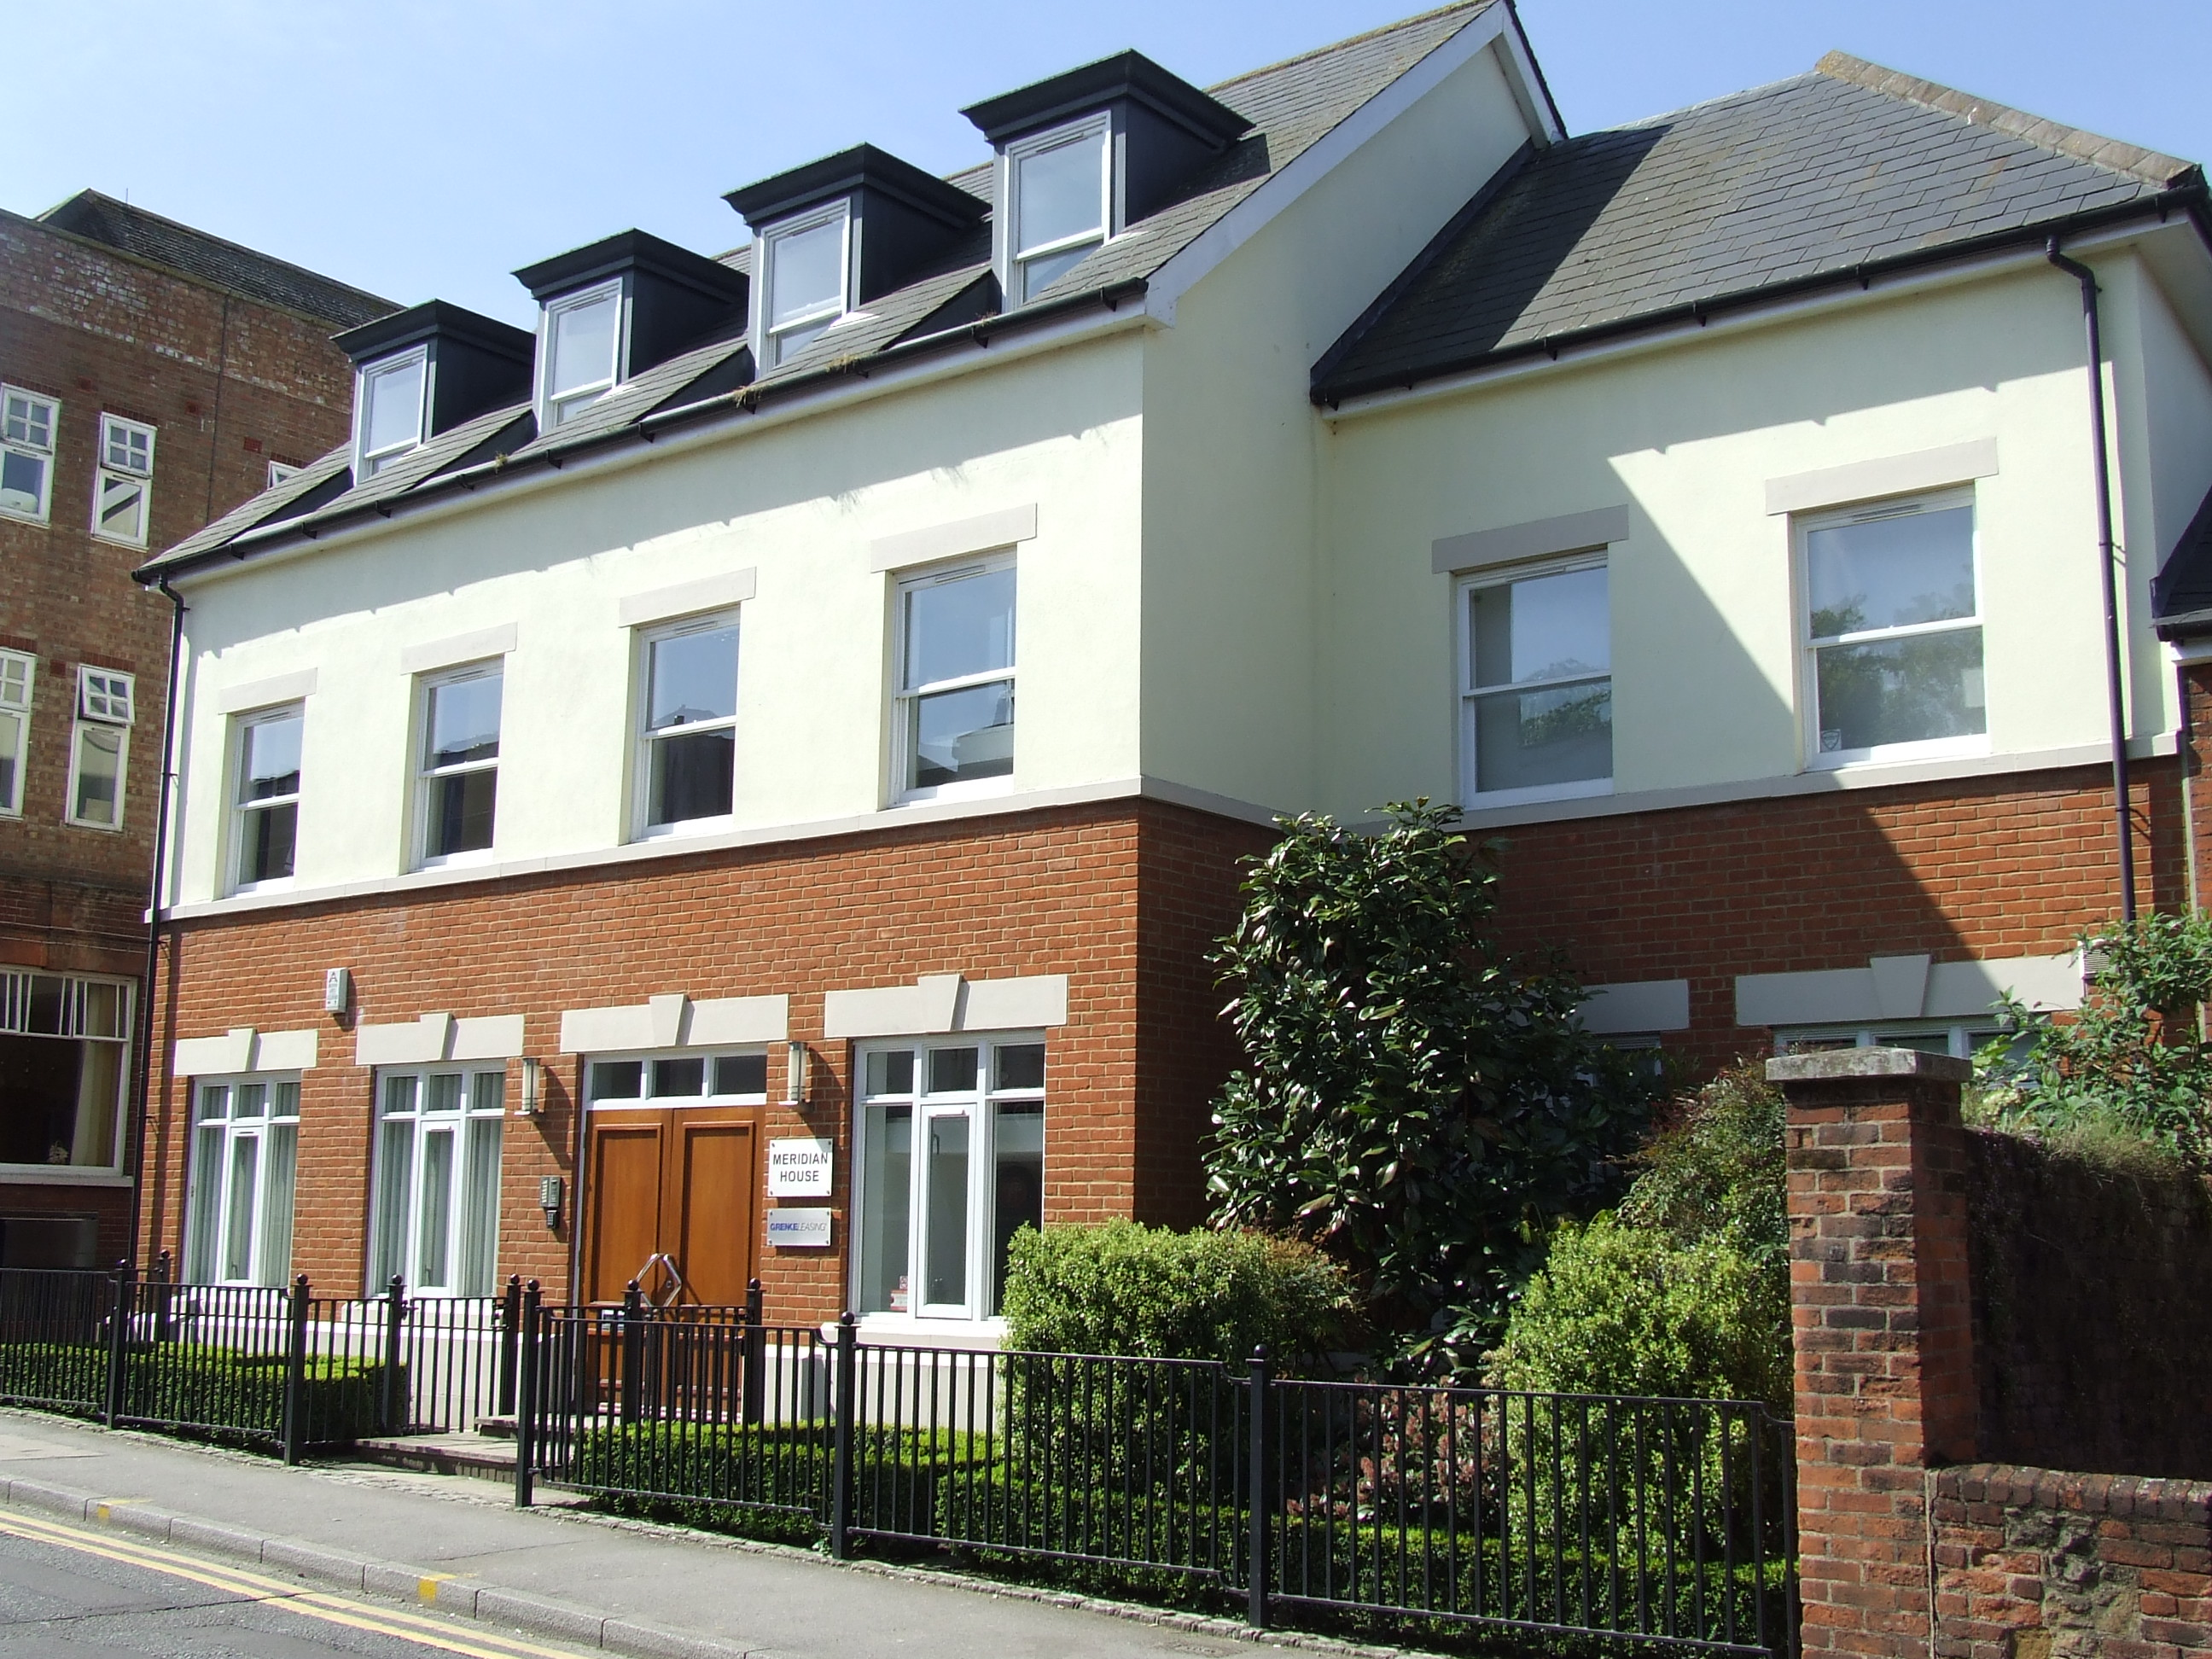 MERIDIAN HOUSE, Chertsey Road, Guildford - Ground Floor Office Suite :  1,738 sq ft